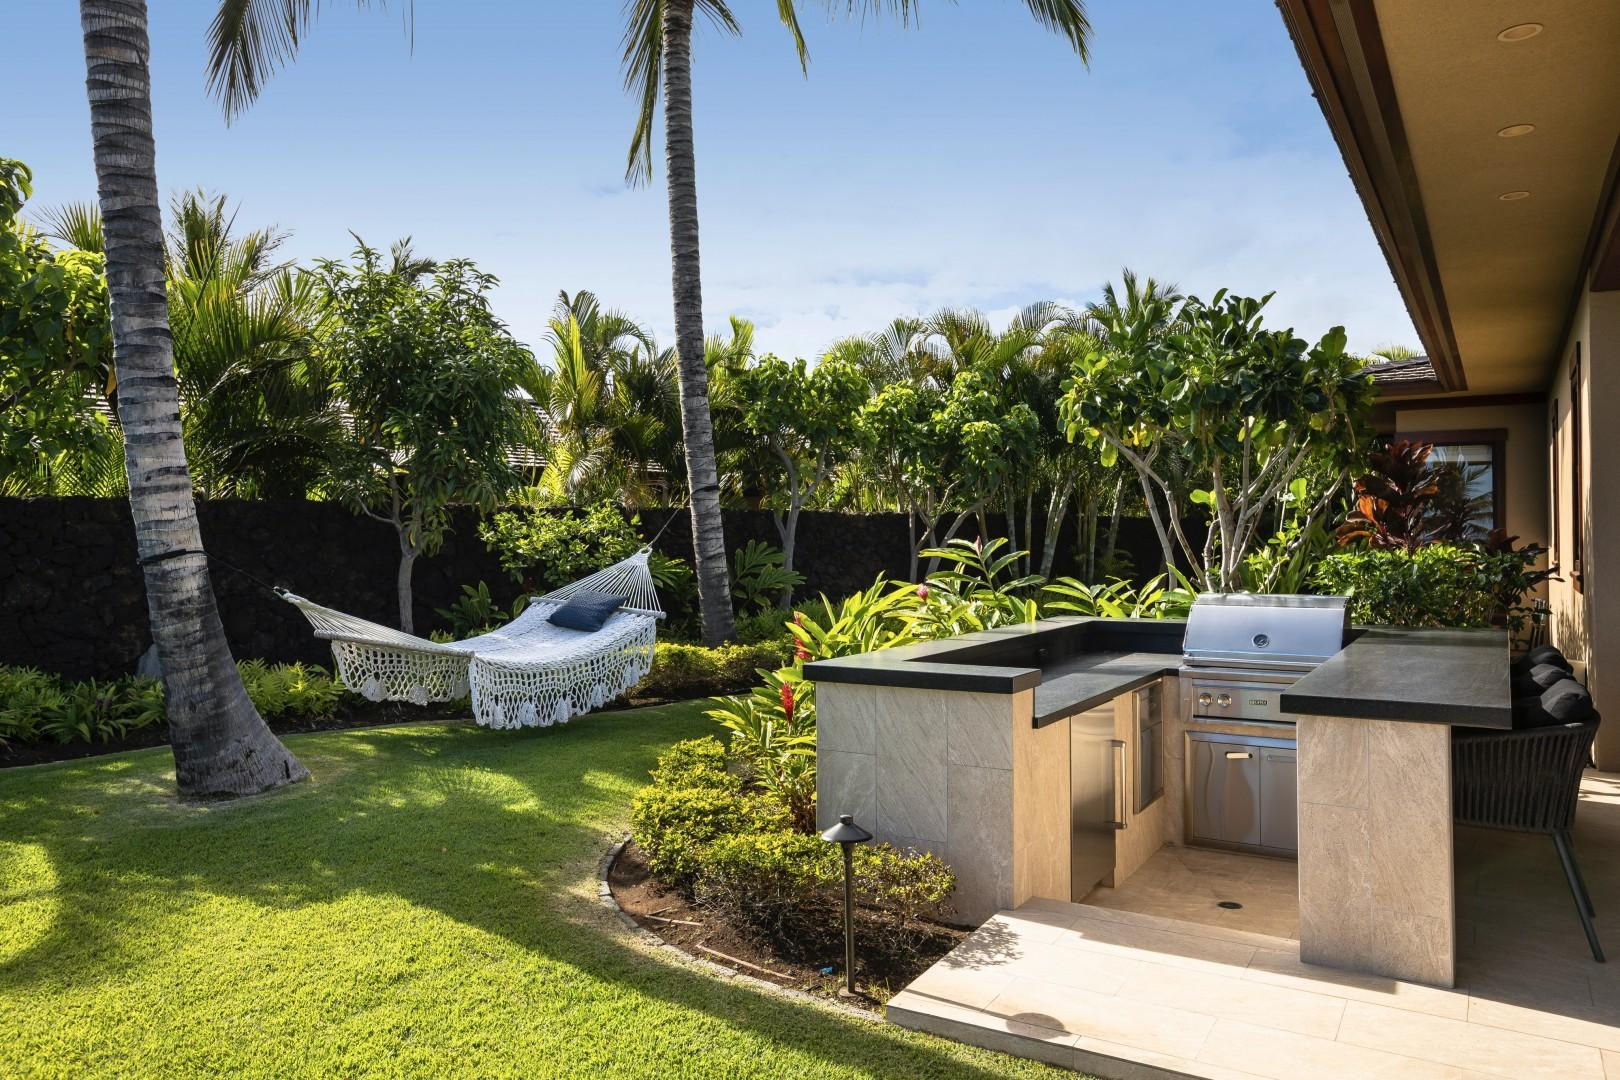 BBQ grill area with ample prep space and mini fridge, with grassy private yard and hammock beyond.